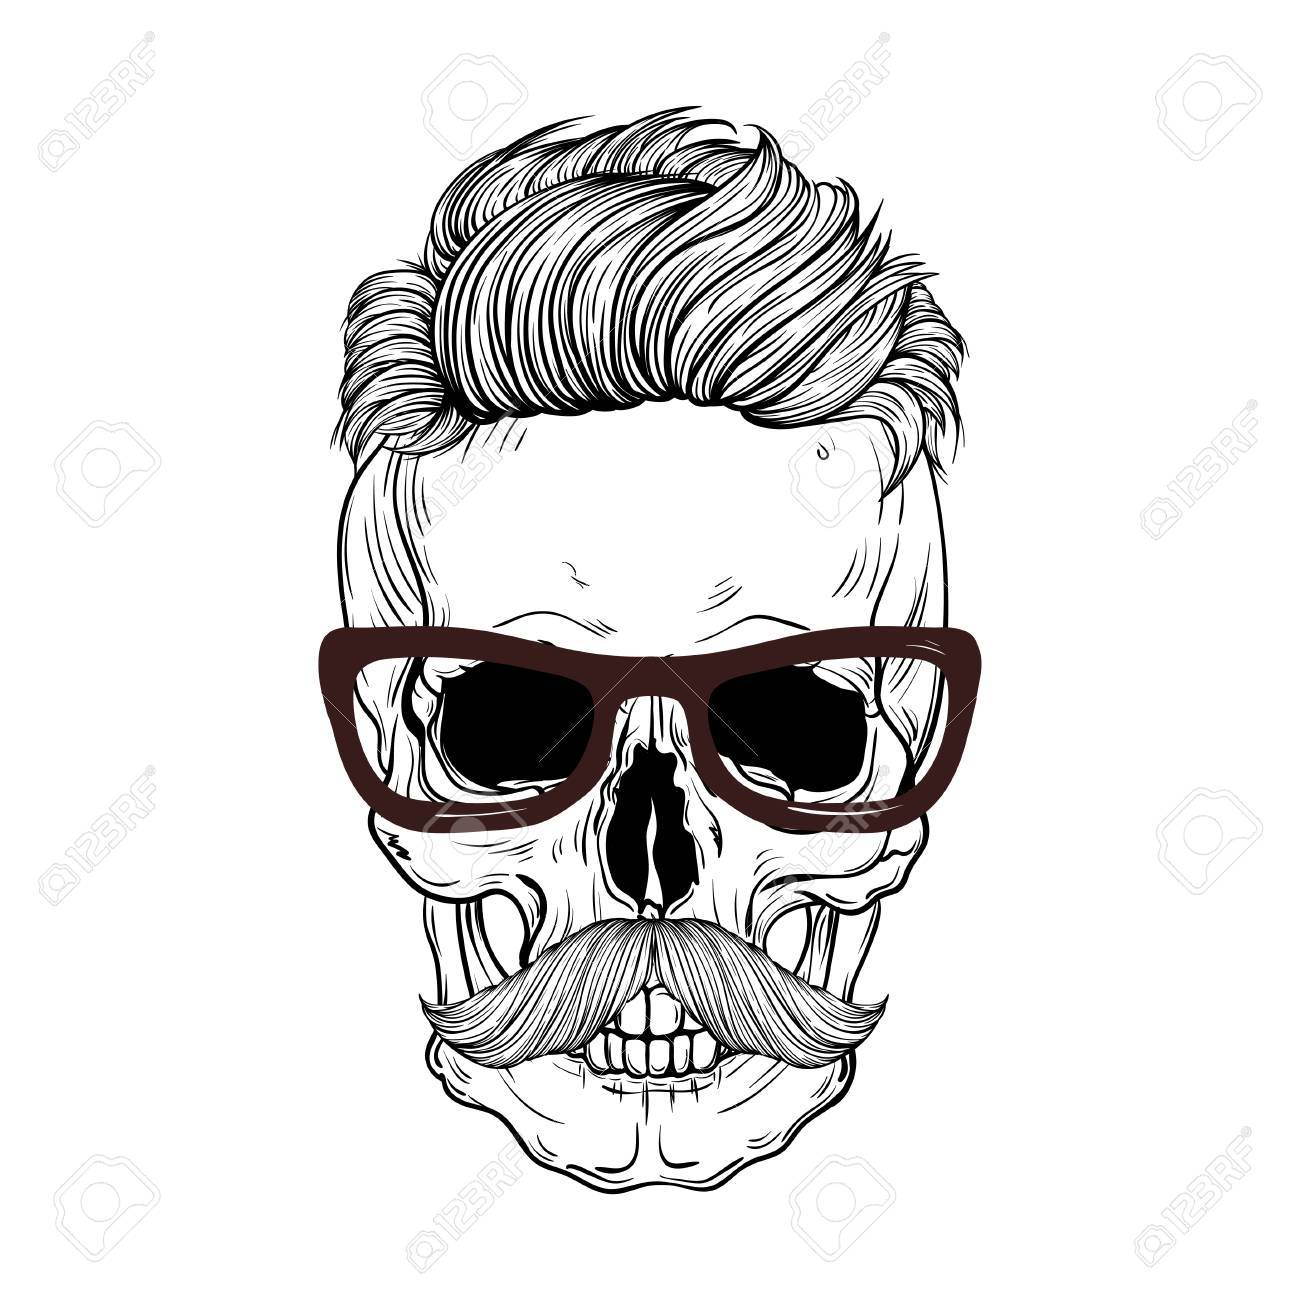 1300x1300 Hand Drawn Anatomy Skull With Mustaches And Hair. Royalty Free